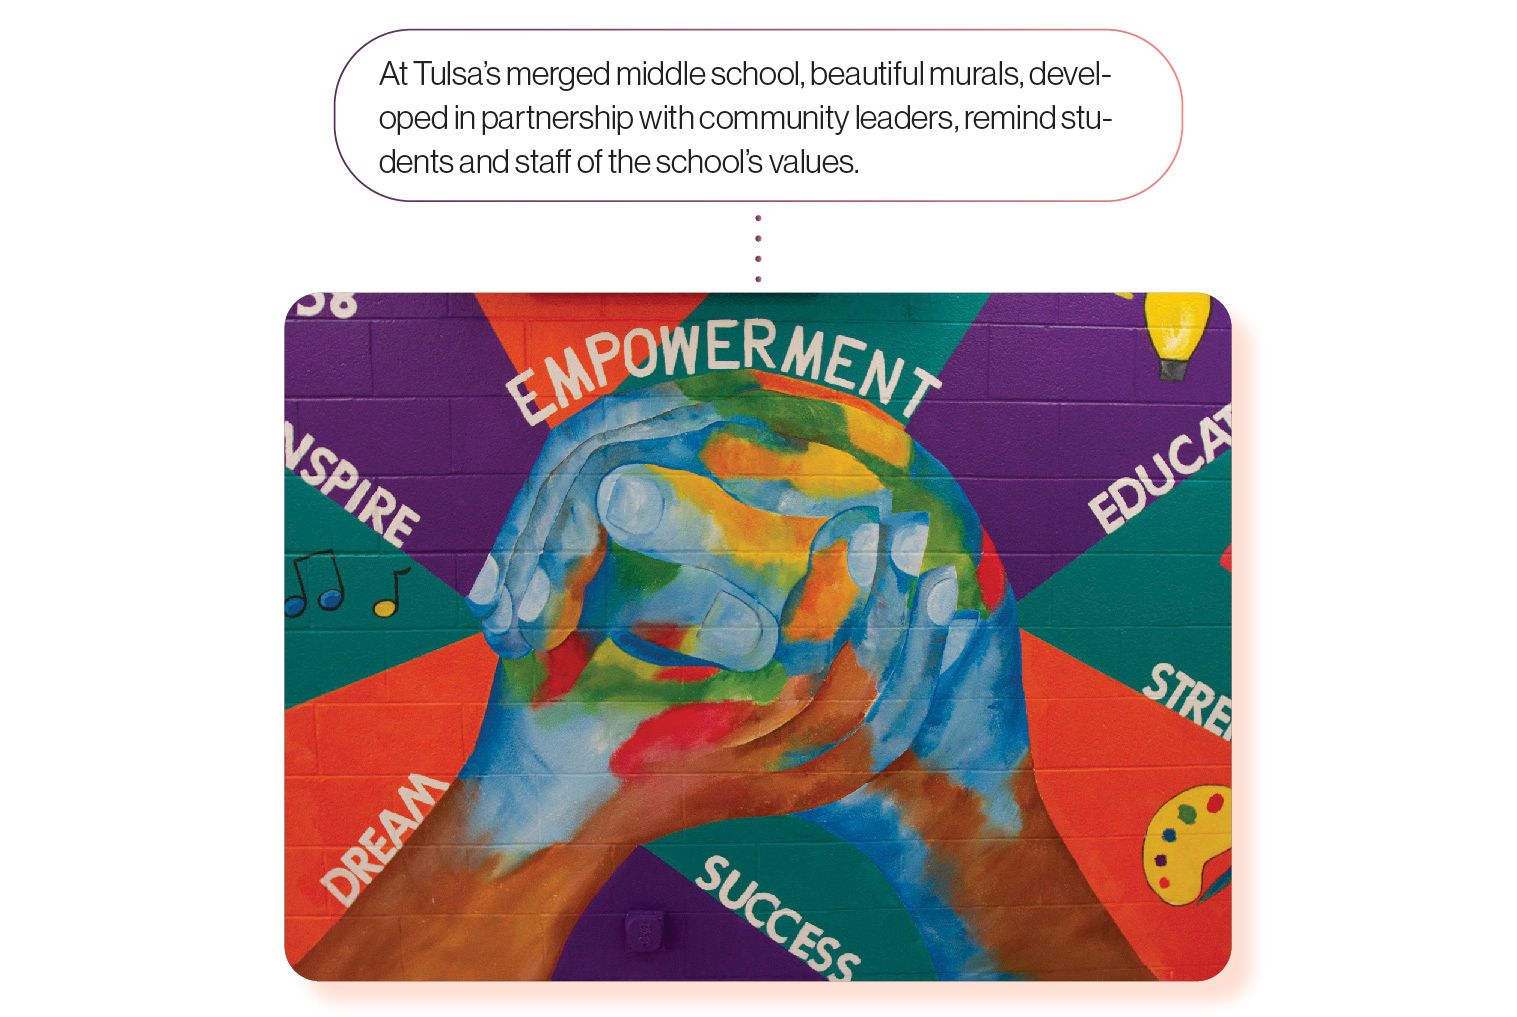 Image: A mural from Tulasa Public Schools, which is two hands coming together to form a globe beneath the word Empowerment. The SchoolCEO caption reads, 'At Tulsa's merged middle school, beautiful murals, developed in partnership with community leaders, remind students and staff of the school's values.'